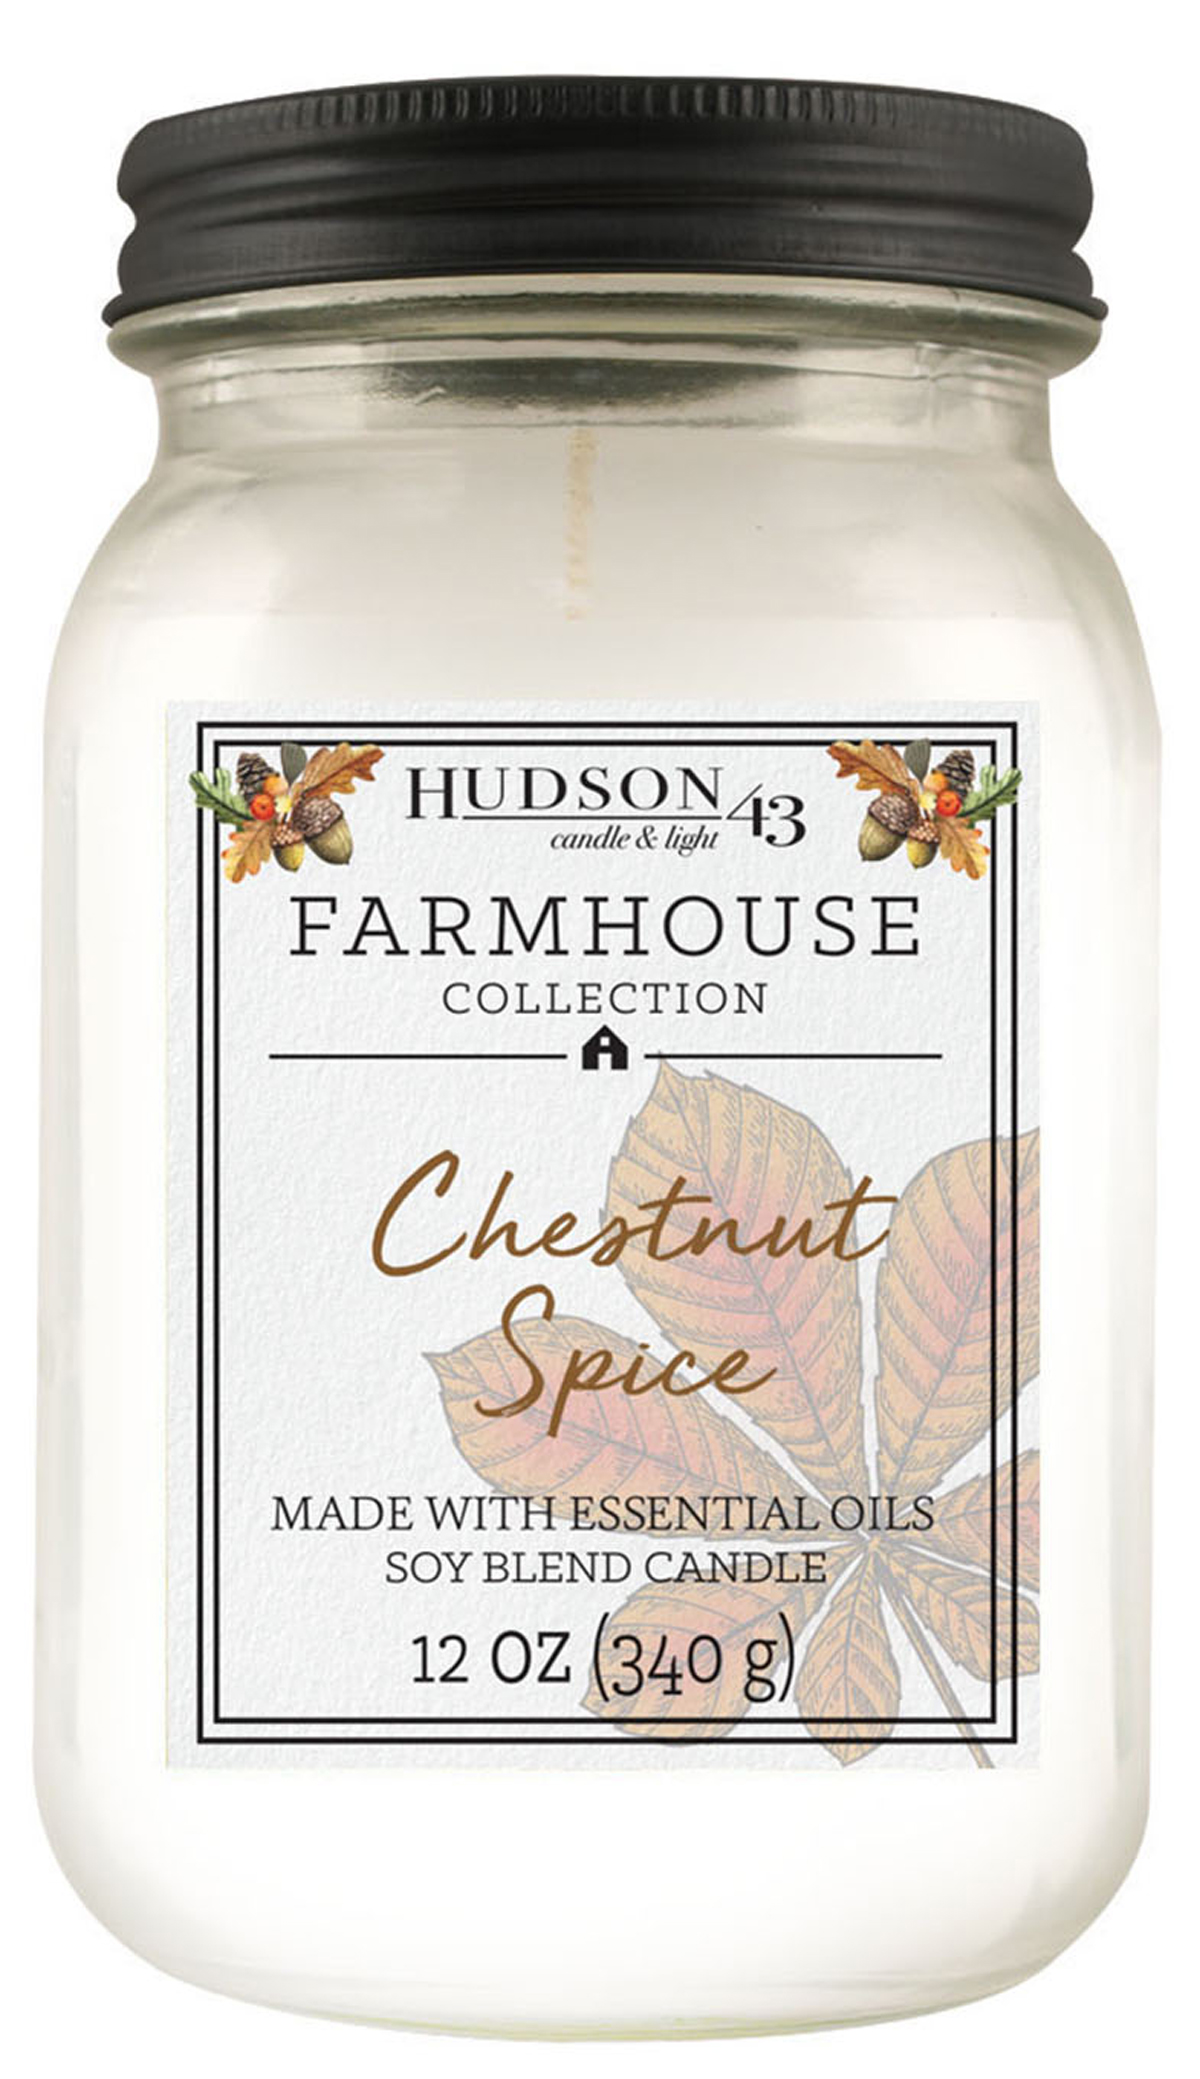 Hudson 43 Candle & Light Farmhouse Collection Chestnut Spice Candle